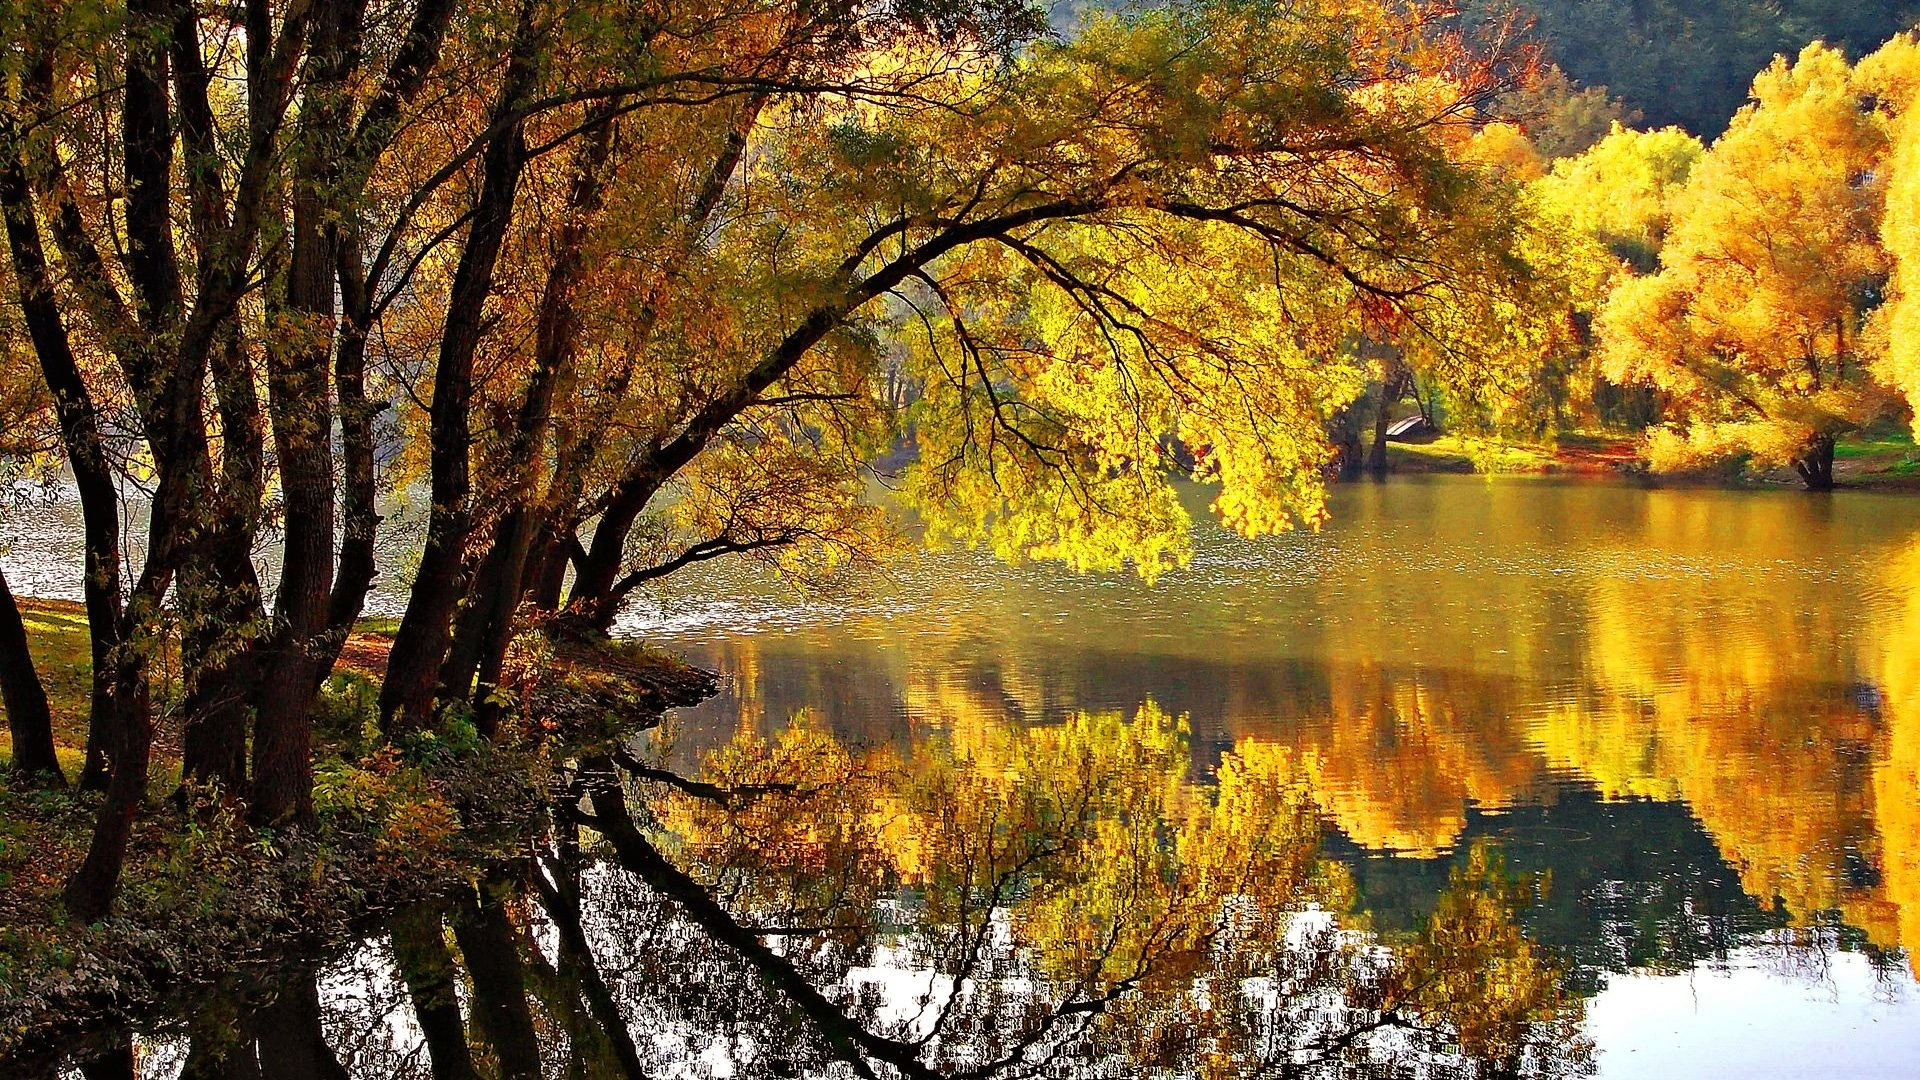 Leaves Tag – Park Golden Foliage Lovely Reflections Shore Pond Water Nature  Yellow Branches Silence Calmness